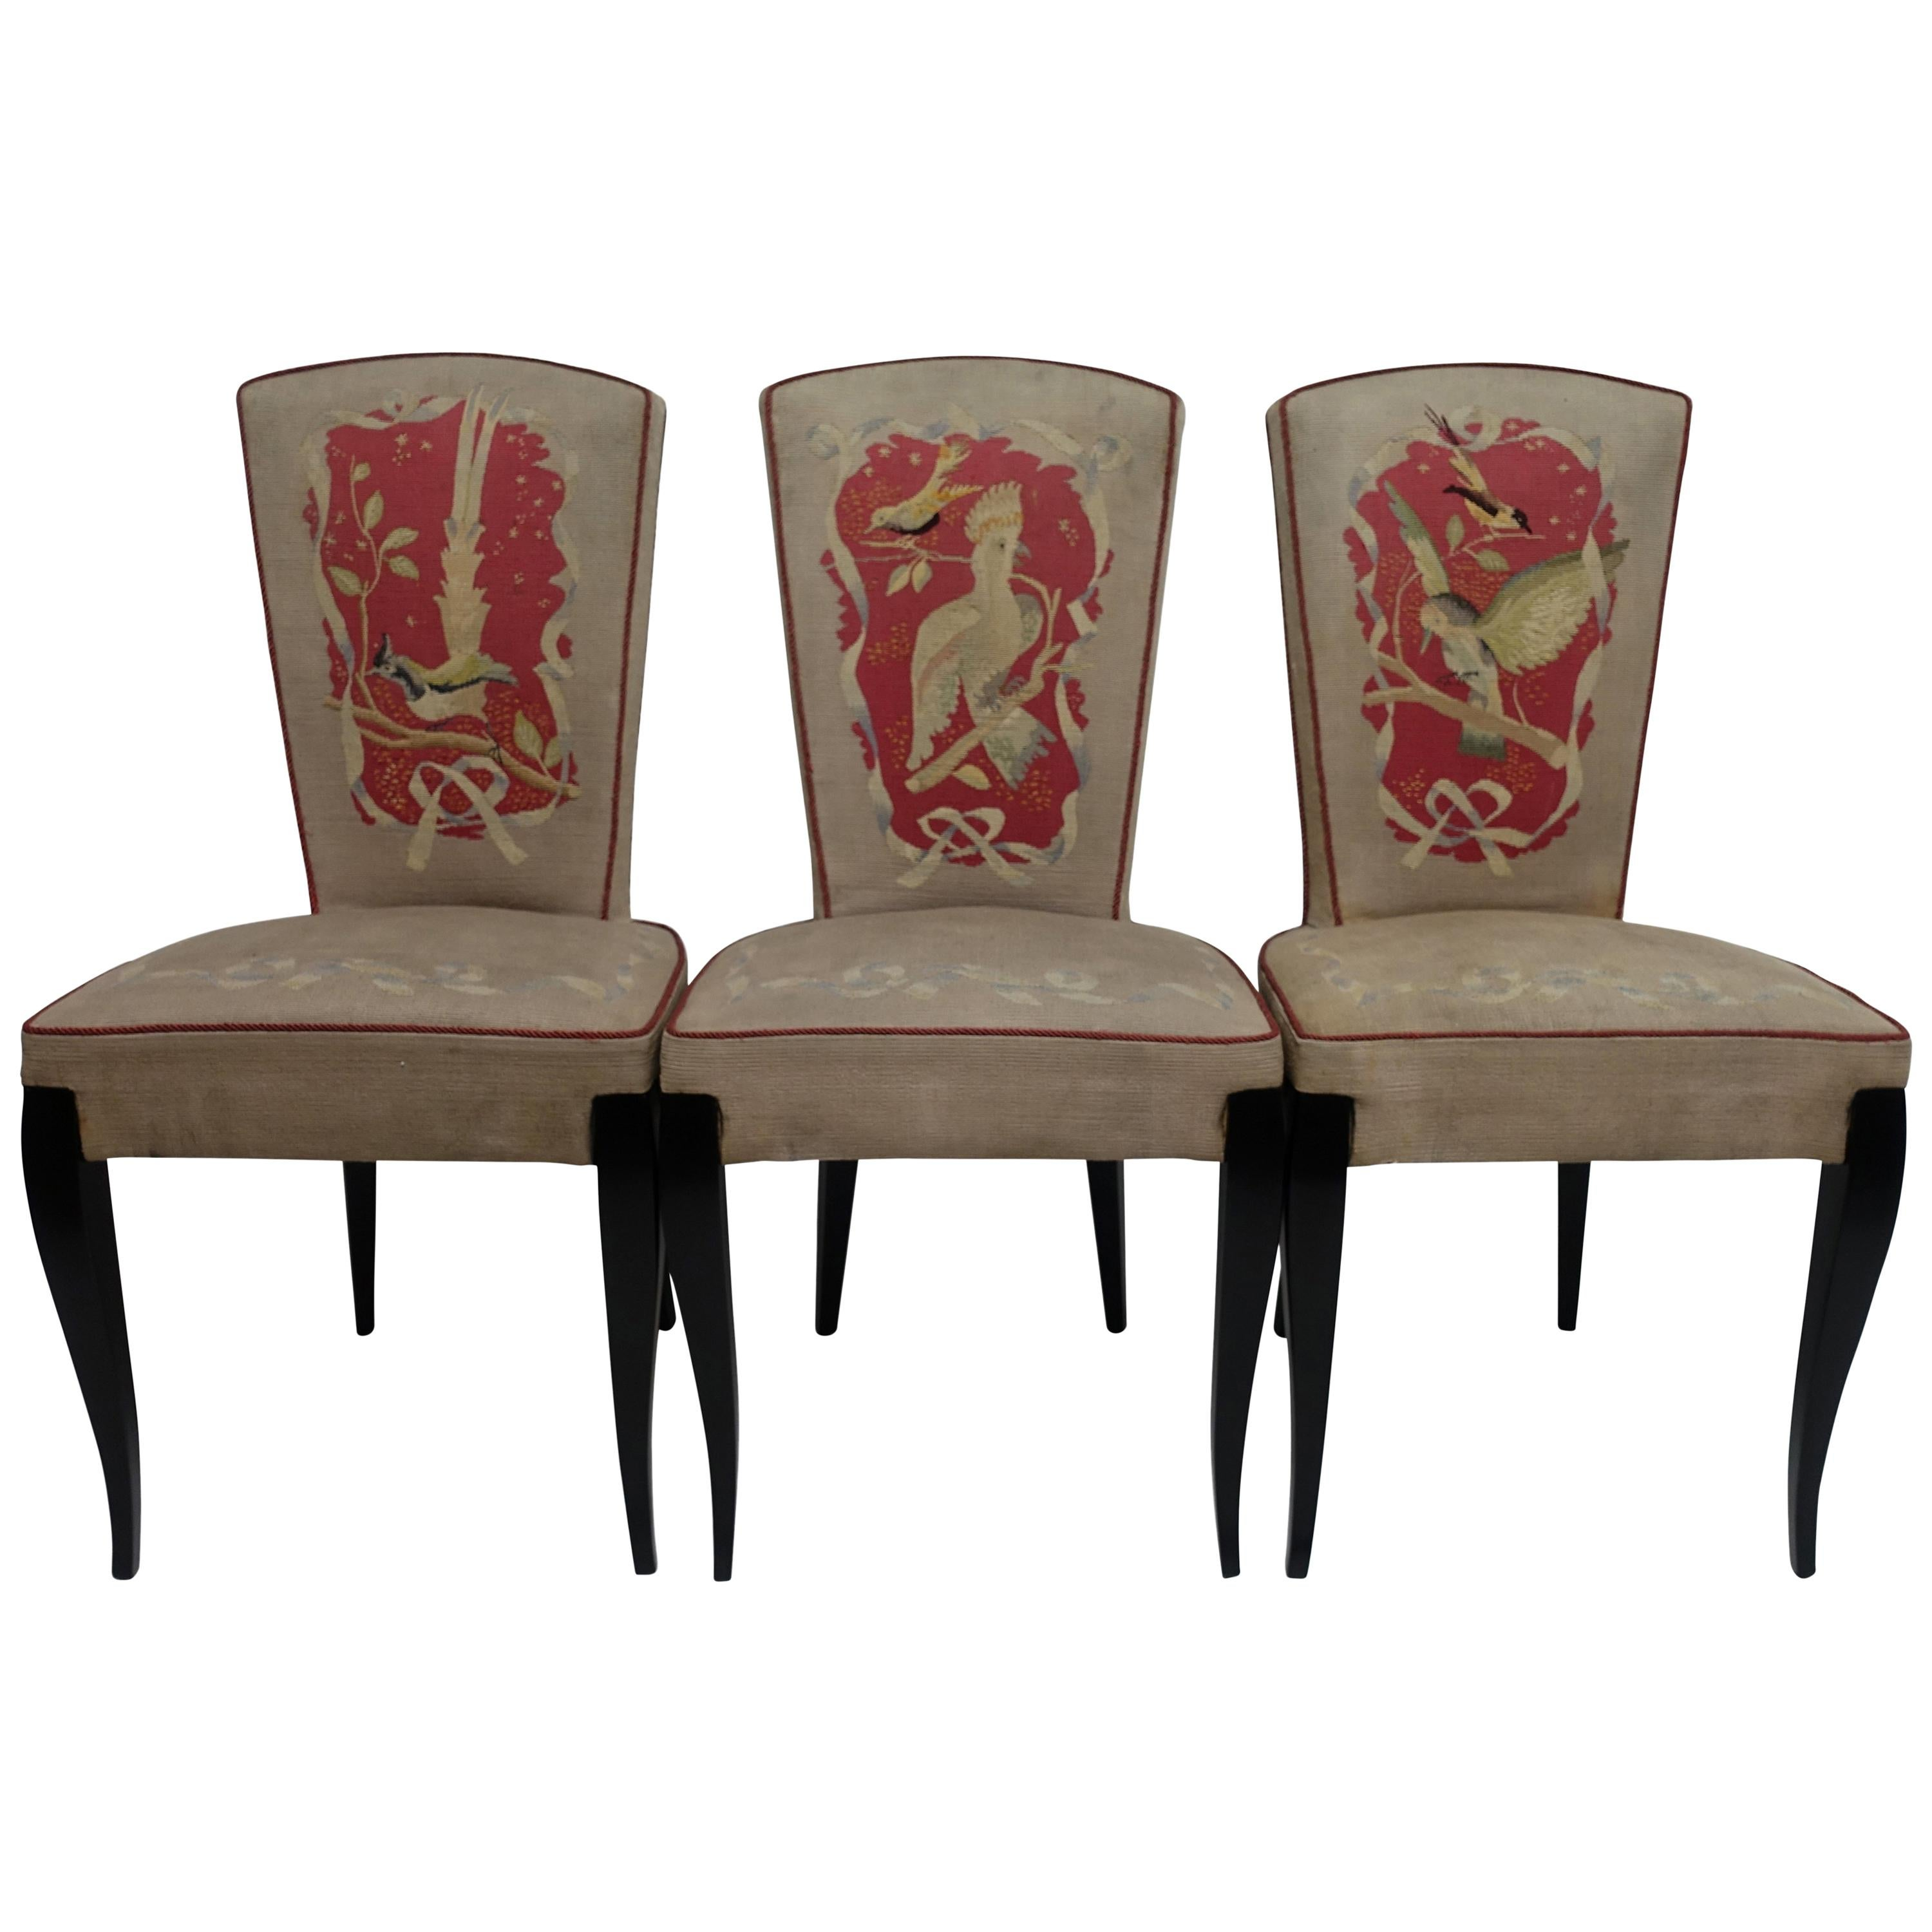 Attrayant Set Of Six French Art Deco Dining Chairs With Bird Scene Tapestry Upholstery